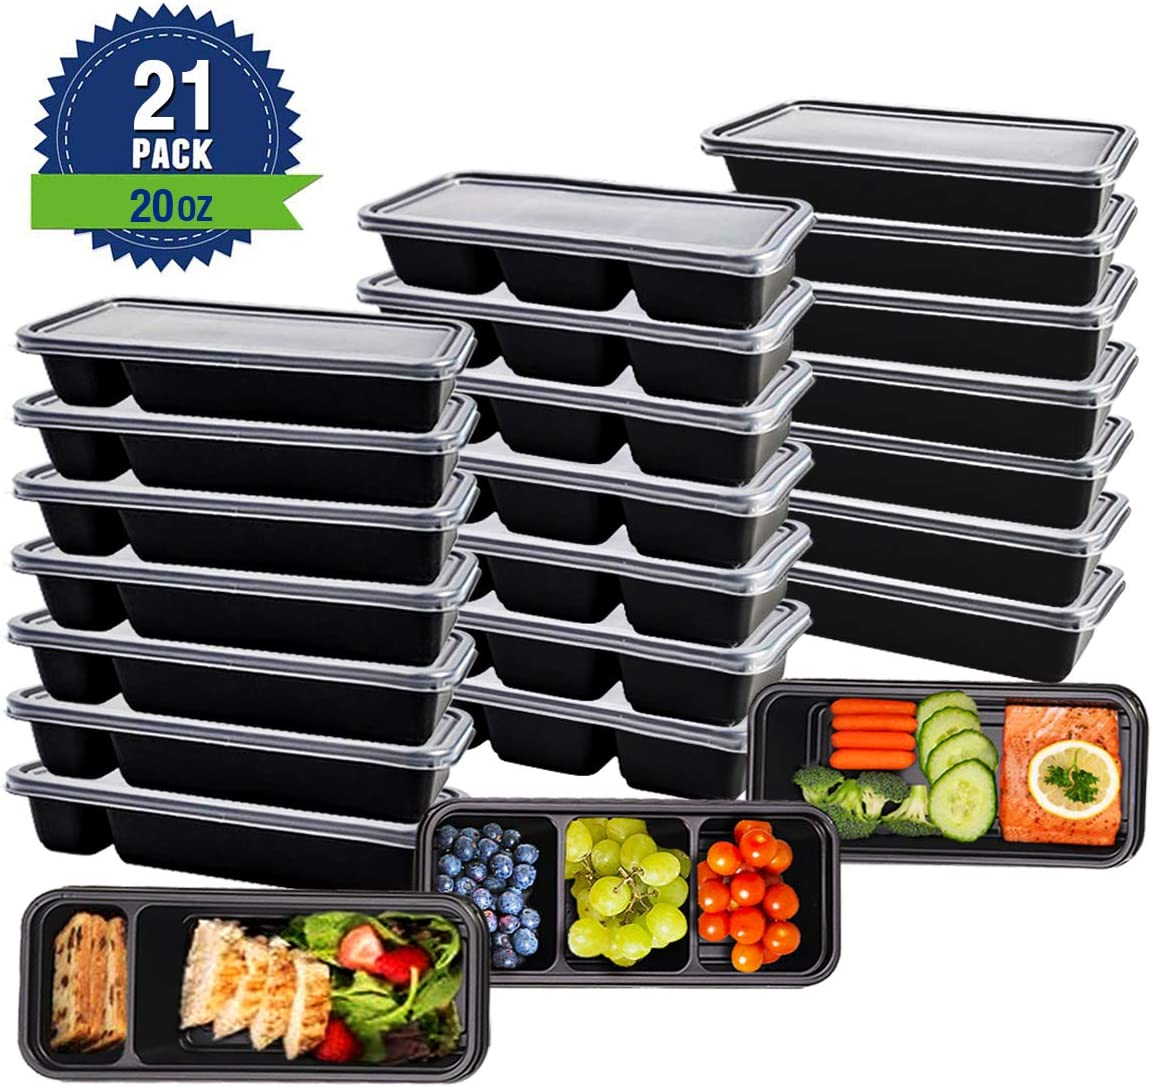 Meal Prep Containers with Lids [21 Pack,20 oz] 3,2 & 1 Compartments Food Storage Sets,Stacking Bento Box Lunch Box Reusable,Microwave and Freezer Safe